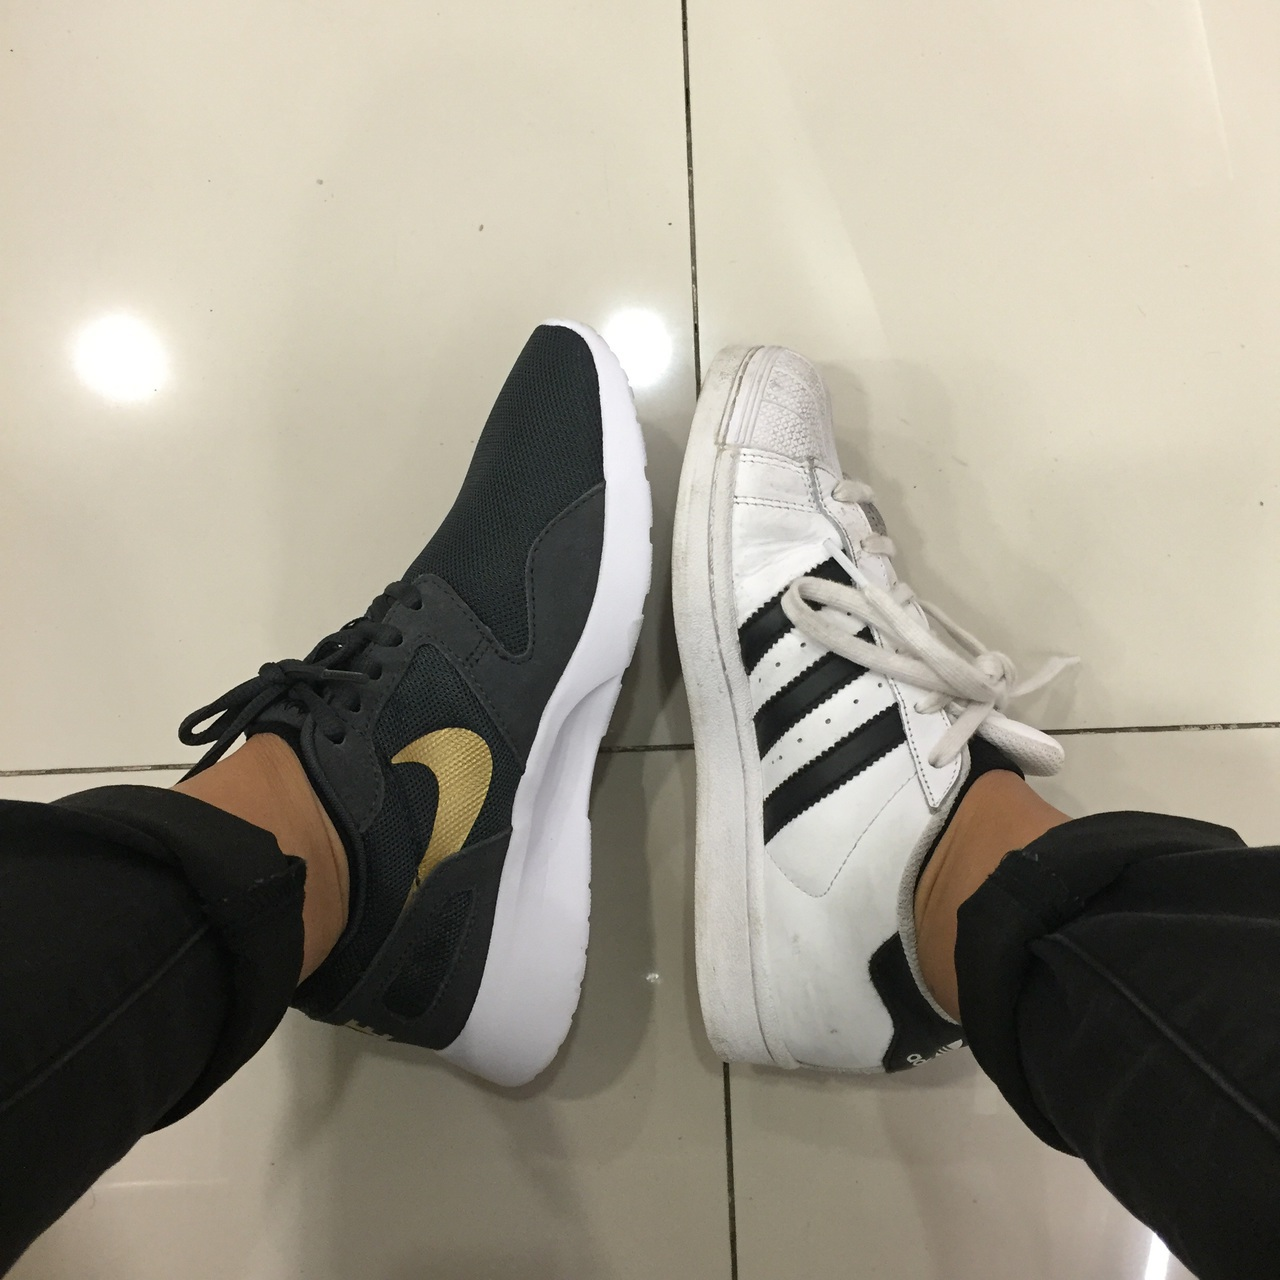 Adidas Superstar Vs Nike Roshe